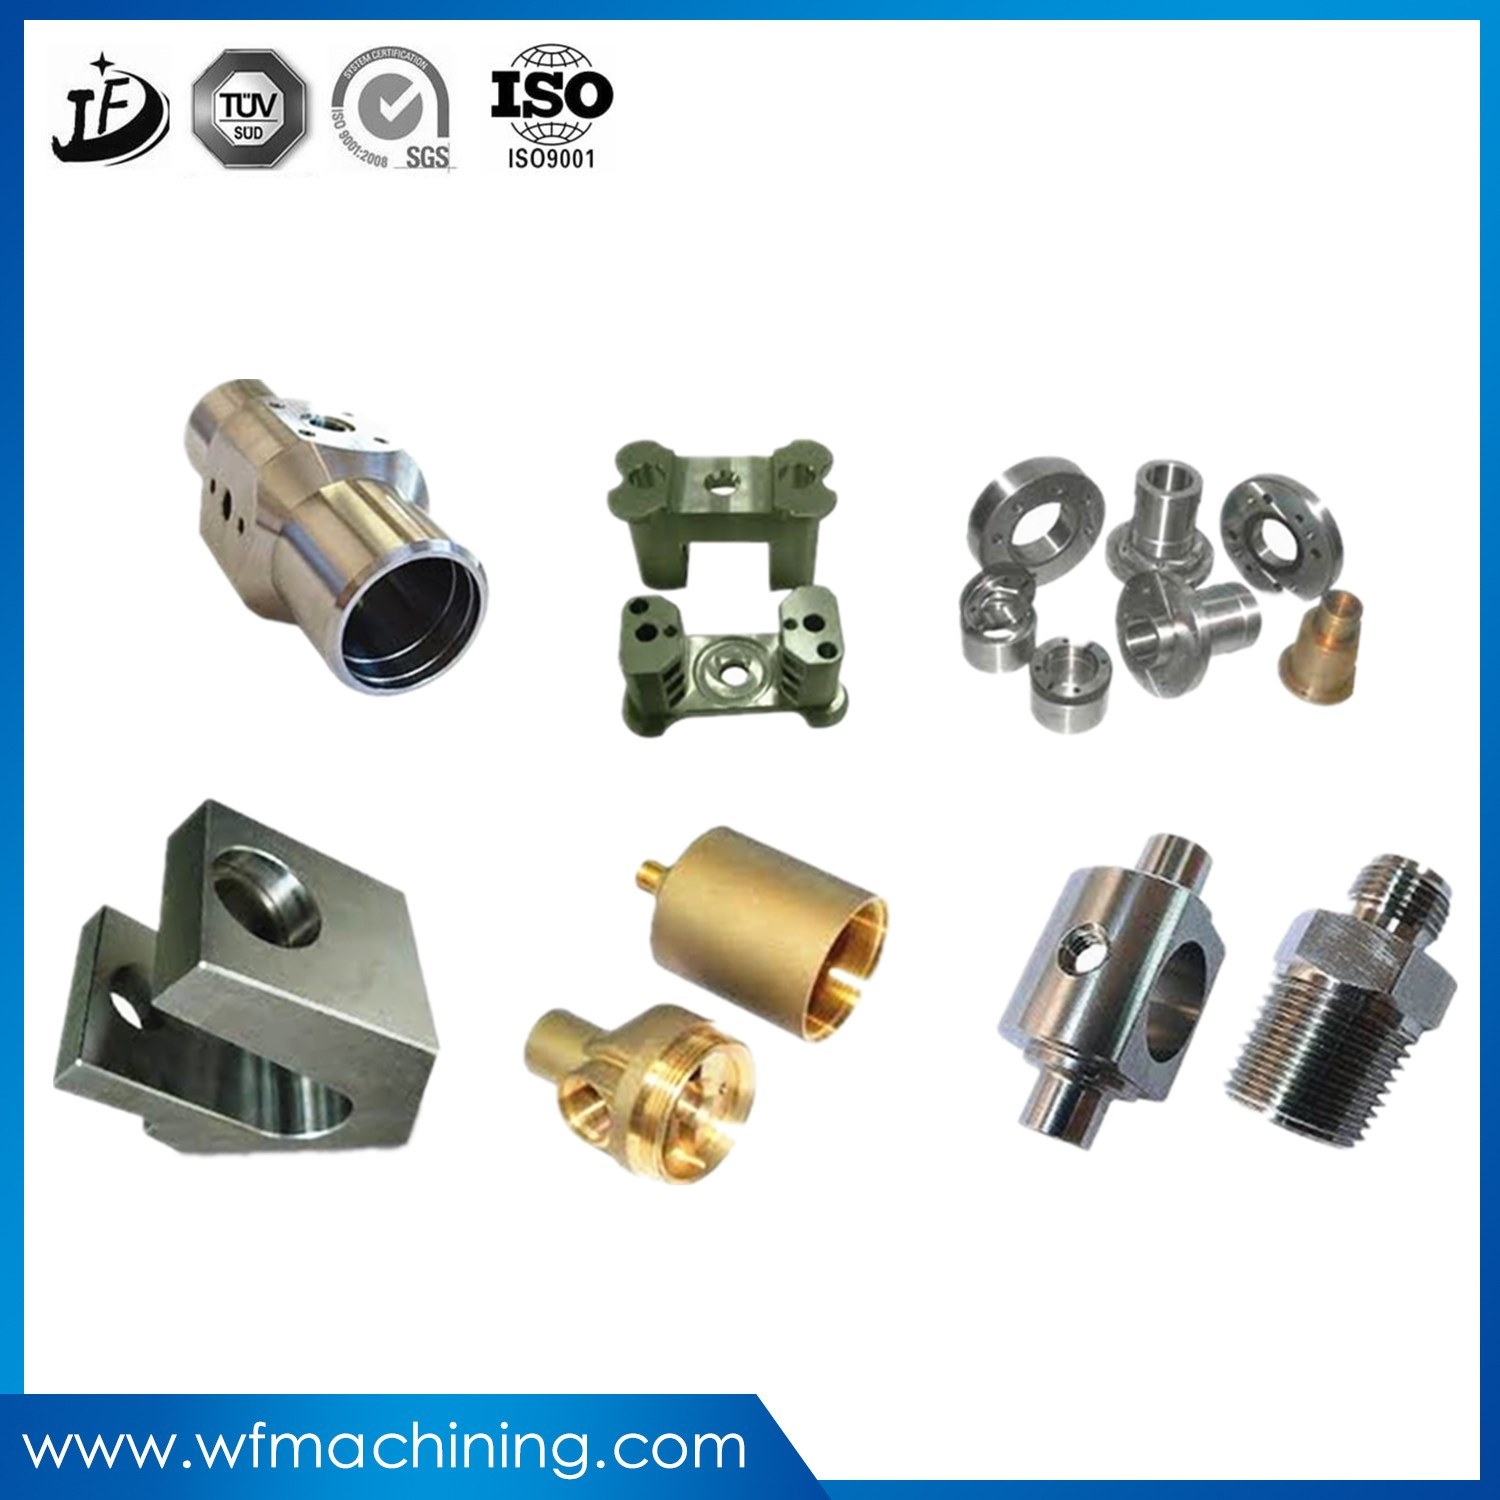 OEM Aluminum/Stainless Steel/Cooper/Brass CNC Lathe Milling Machining Part of Sewing Machine